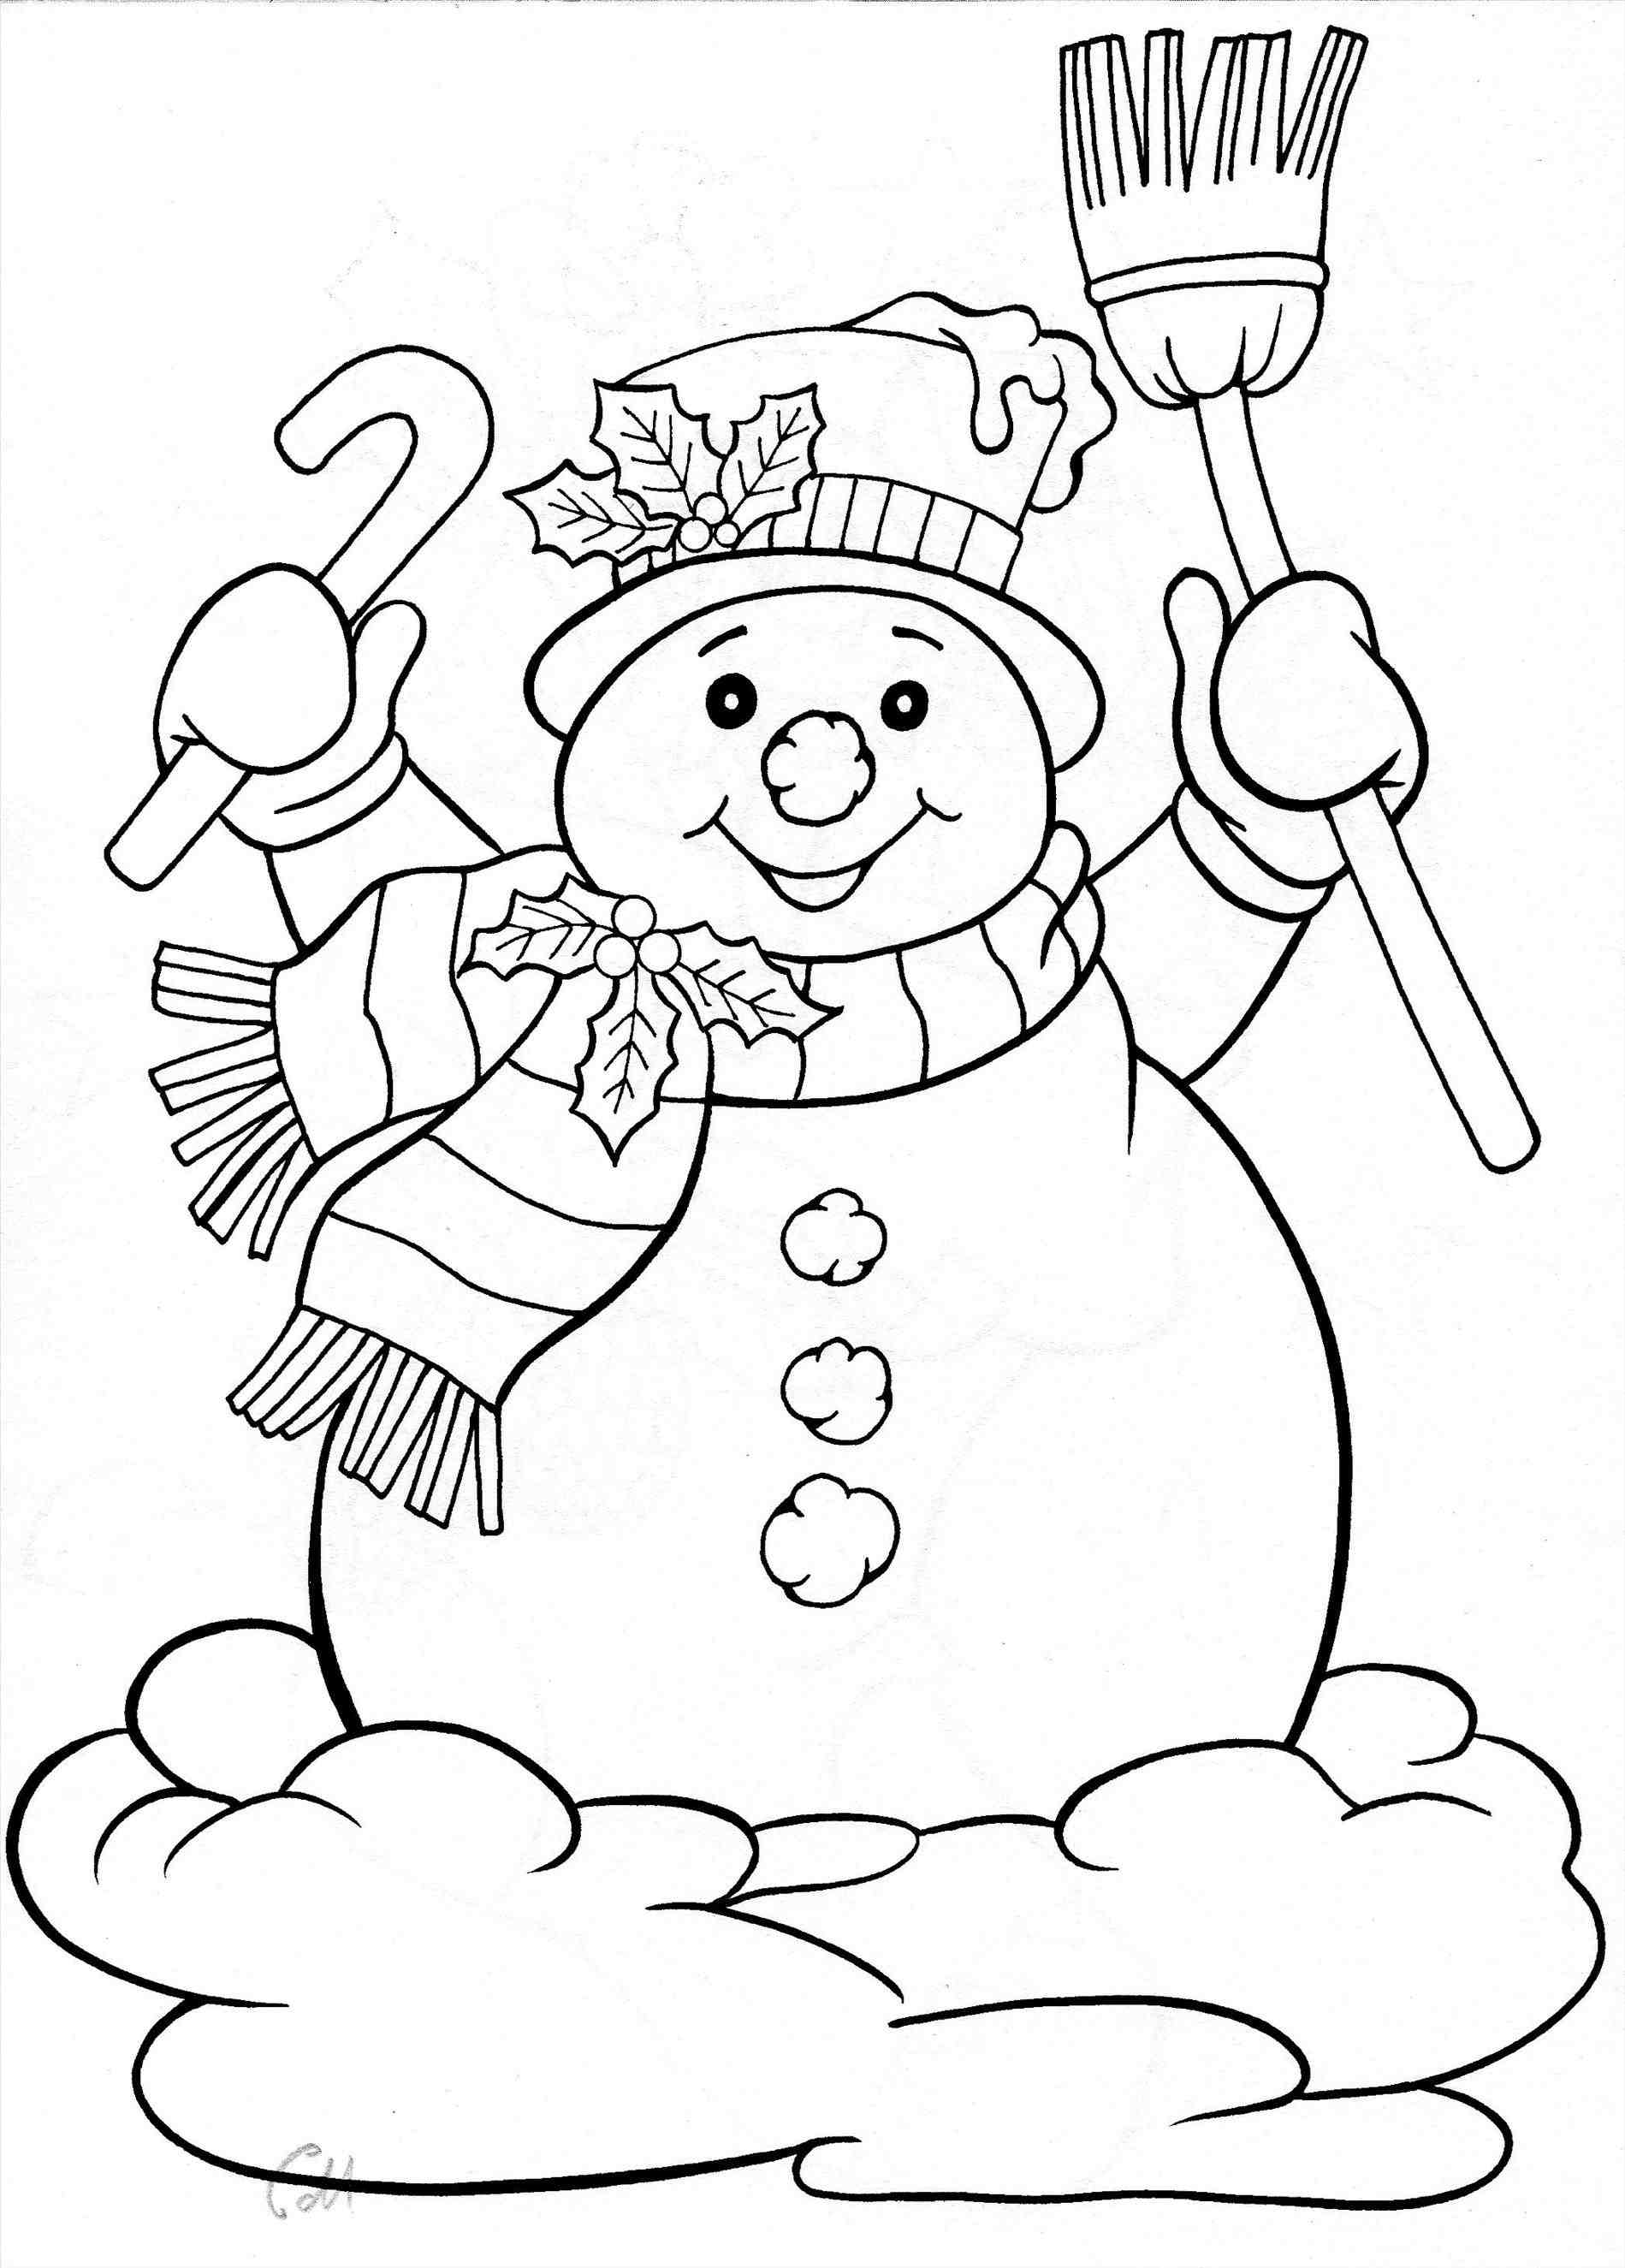 snowman for coloring cute snowman coloring pages at getcoloringscom free coloring snowman for